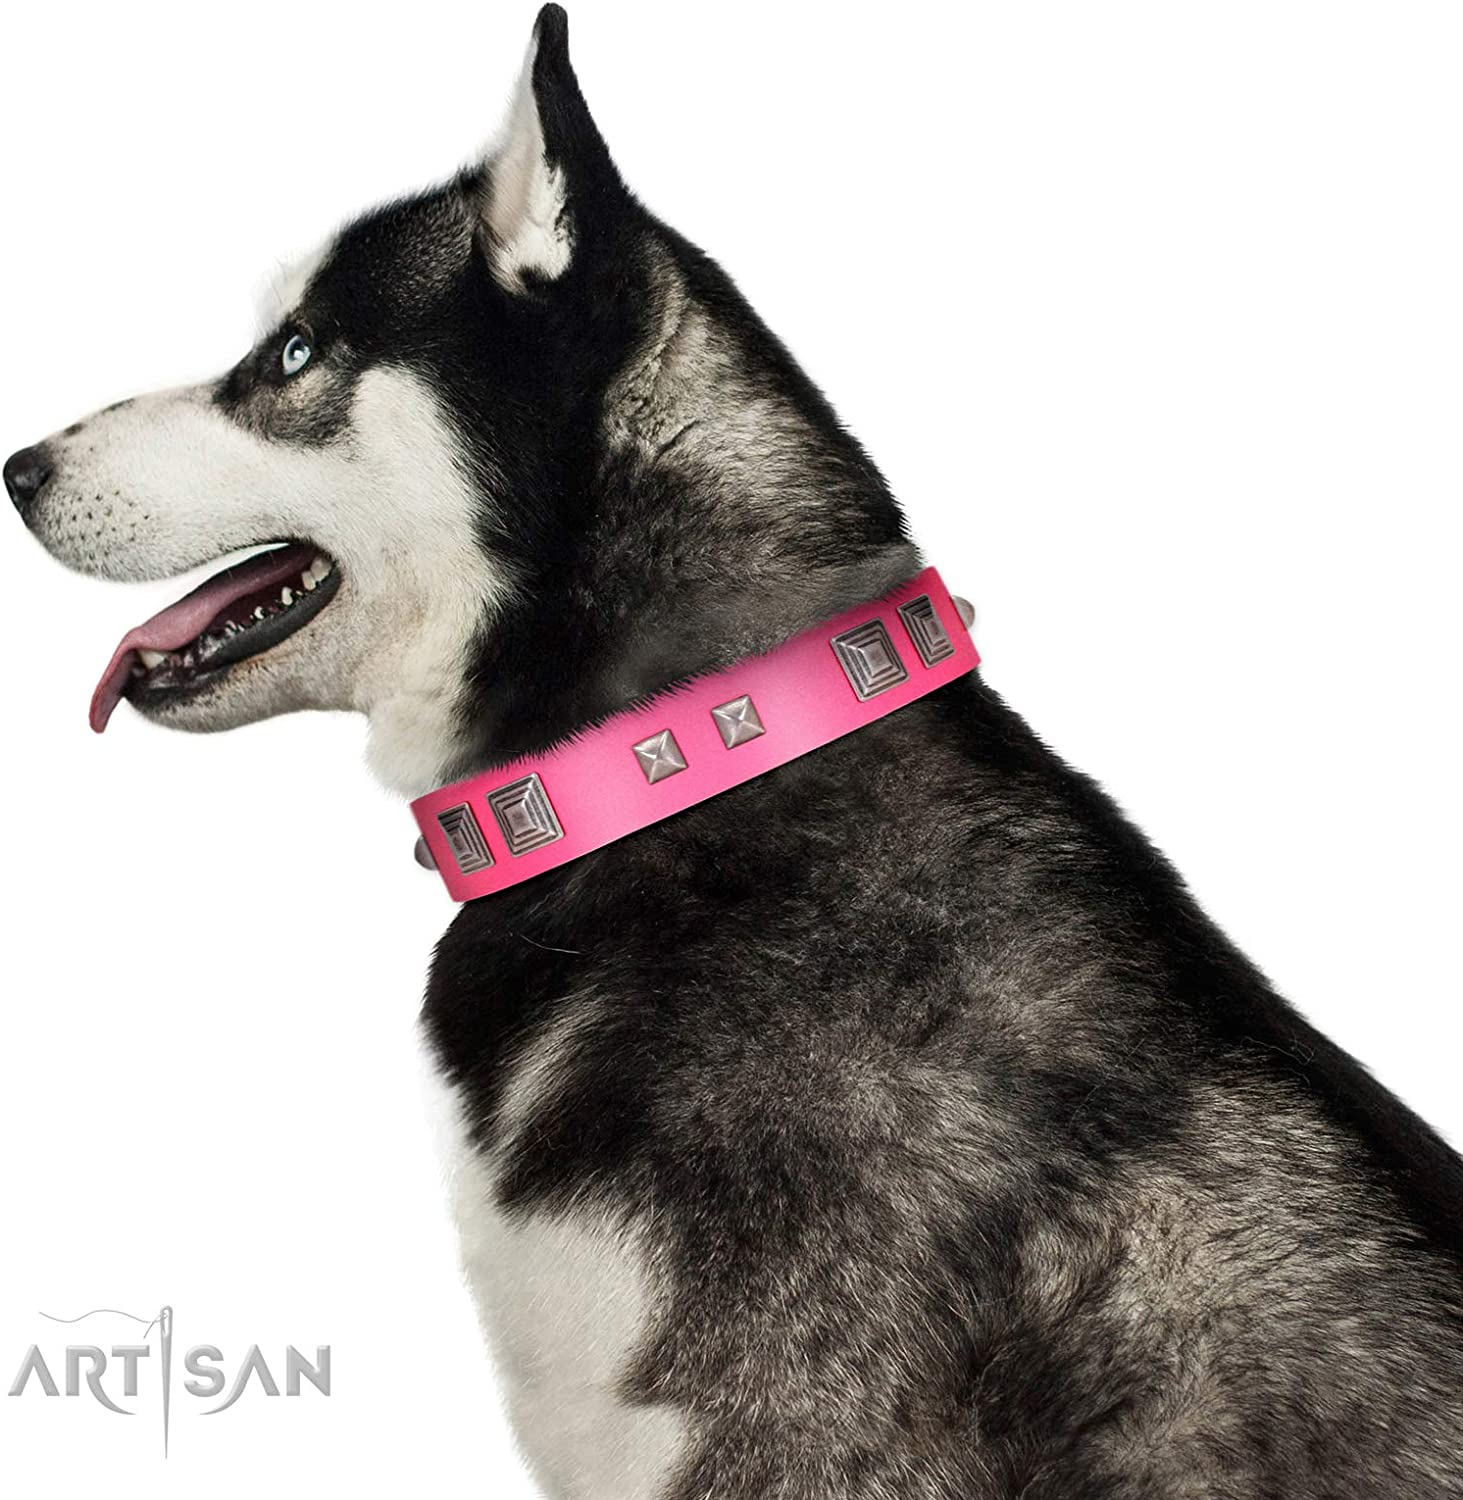 FDT Artisan 23 inch Designer Handmade Pink Leather Dog Collar  Rosy Evolution  1 1 2 inch (40 mm) Wide  Gift Box Included